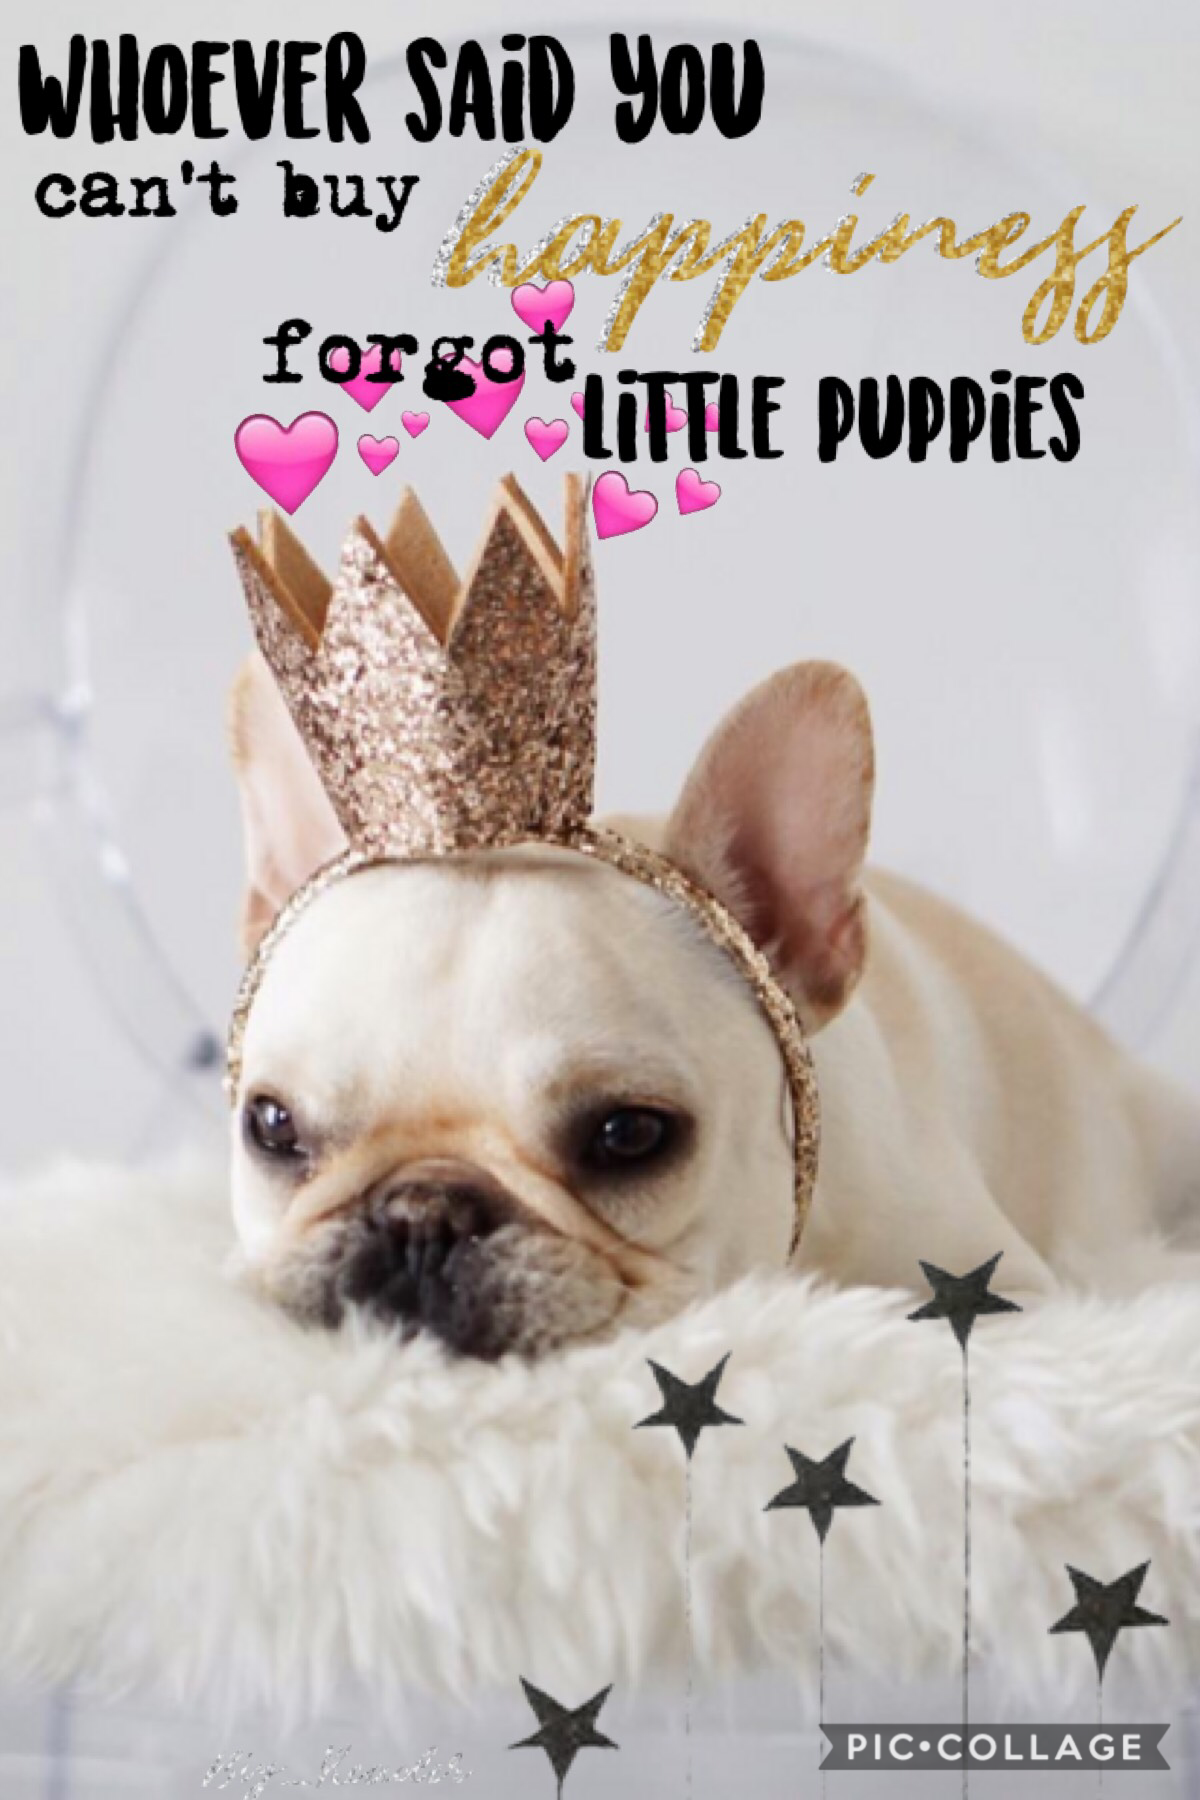 This collage reminds me of one of my friends, she LOVES her French bulldog!! 💕 hope everyone is having a great day!! Not doing much today just studying for finals😎👌🏼🌸 going to the lake this weekend!!😆💧